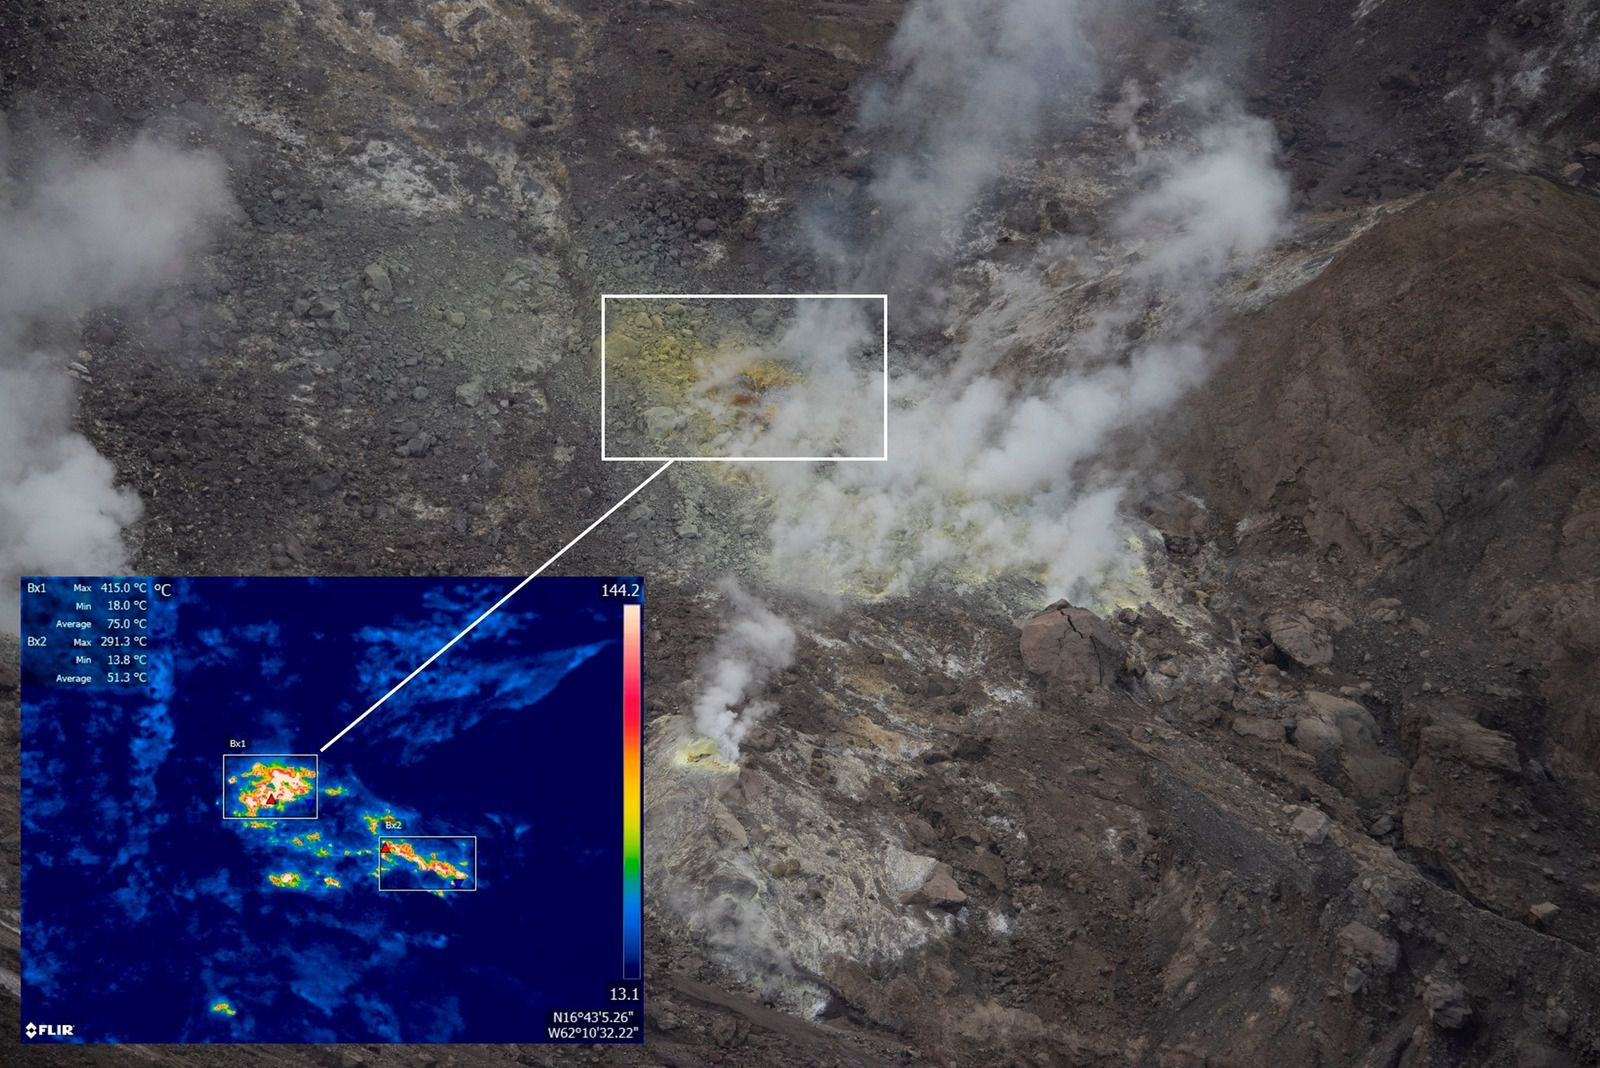 Montserrat - Soufrière Hills - Close-up view of the main fumarole (aka Gas Vent) in the floor of the 2010 collapse scar, with a thermal image showing temperatures above 415 ° C. - photo MVO 29.01.2021